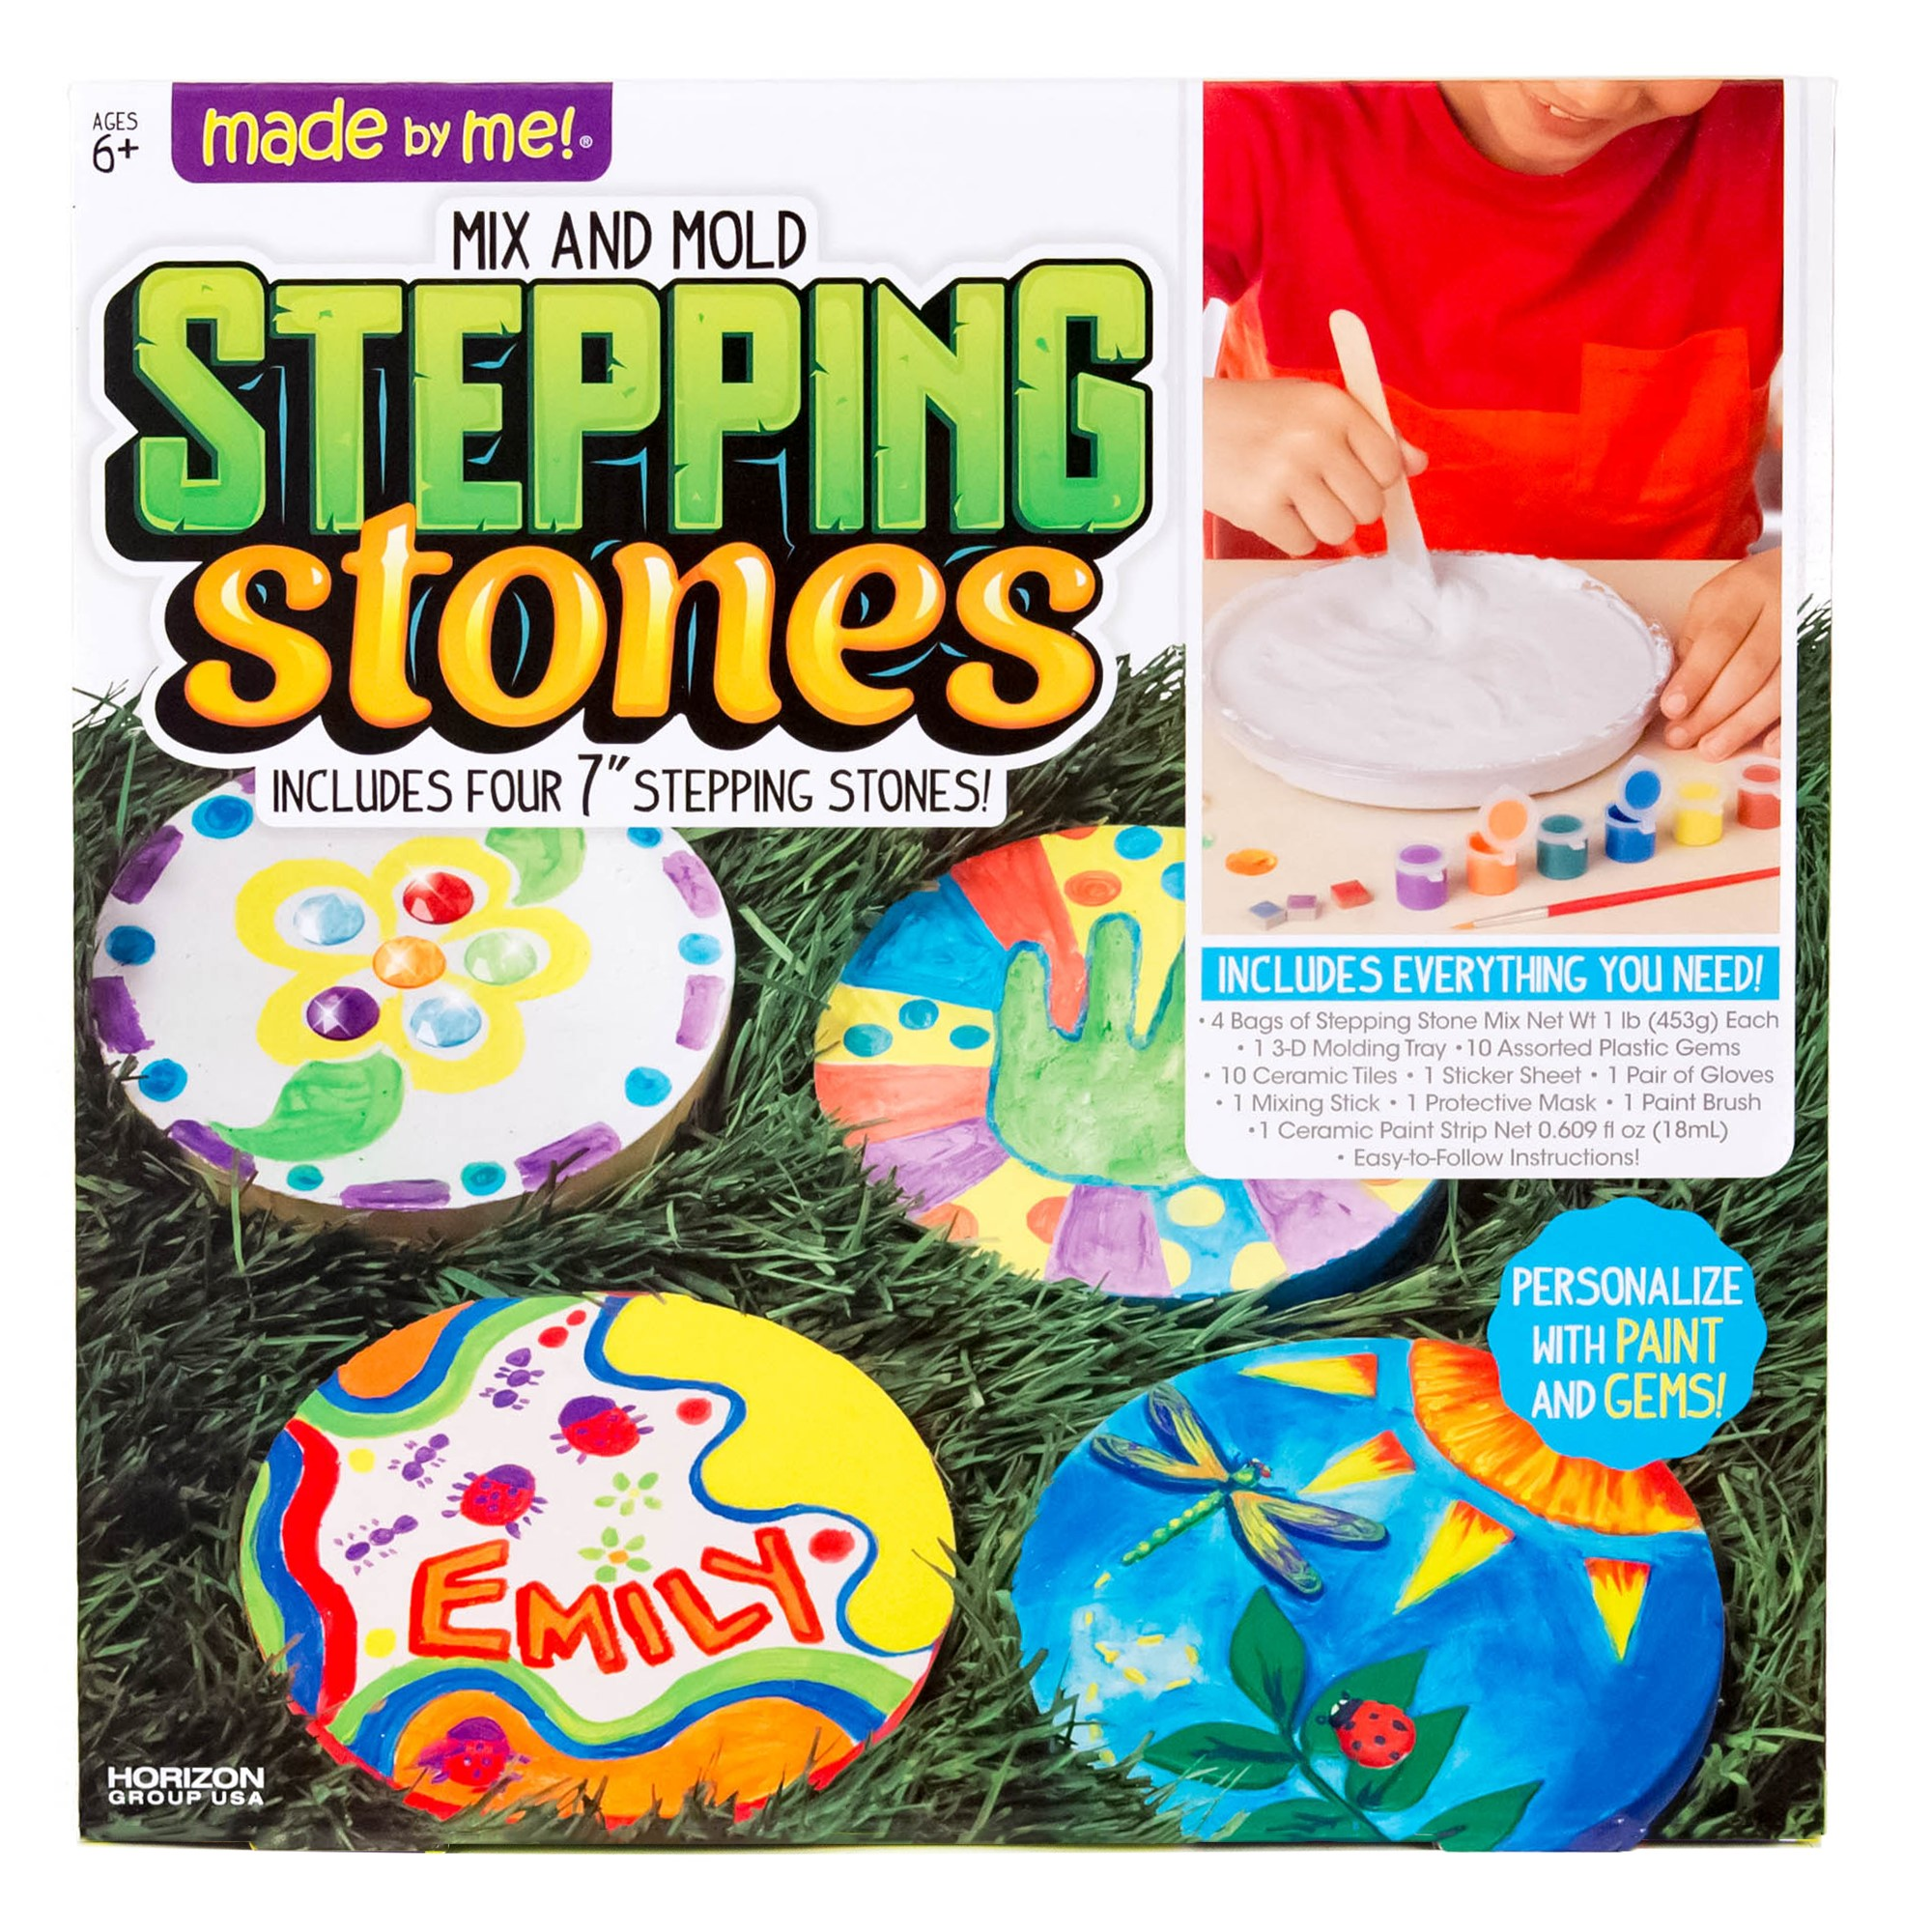 Made by Me Stepping Stones by Horizon Group USA